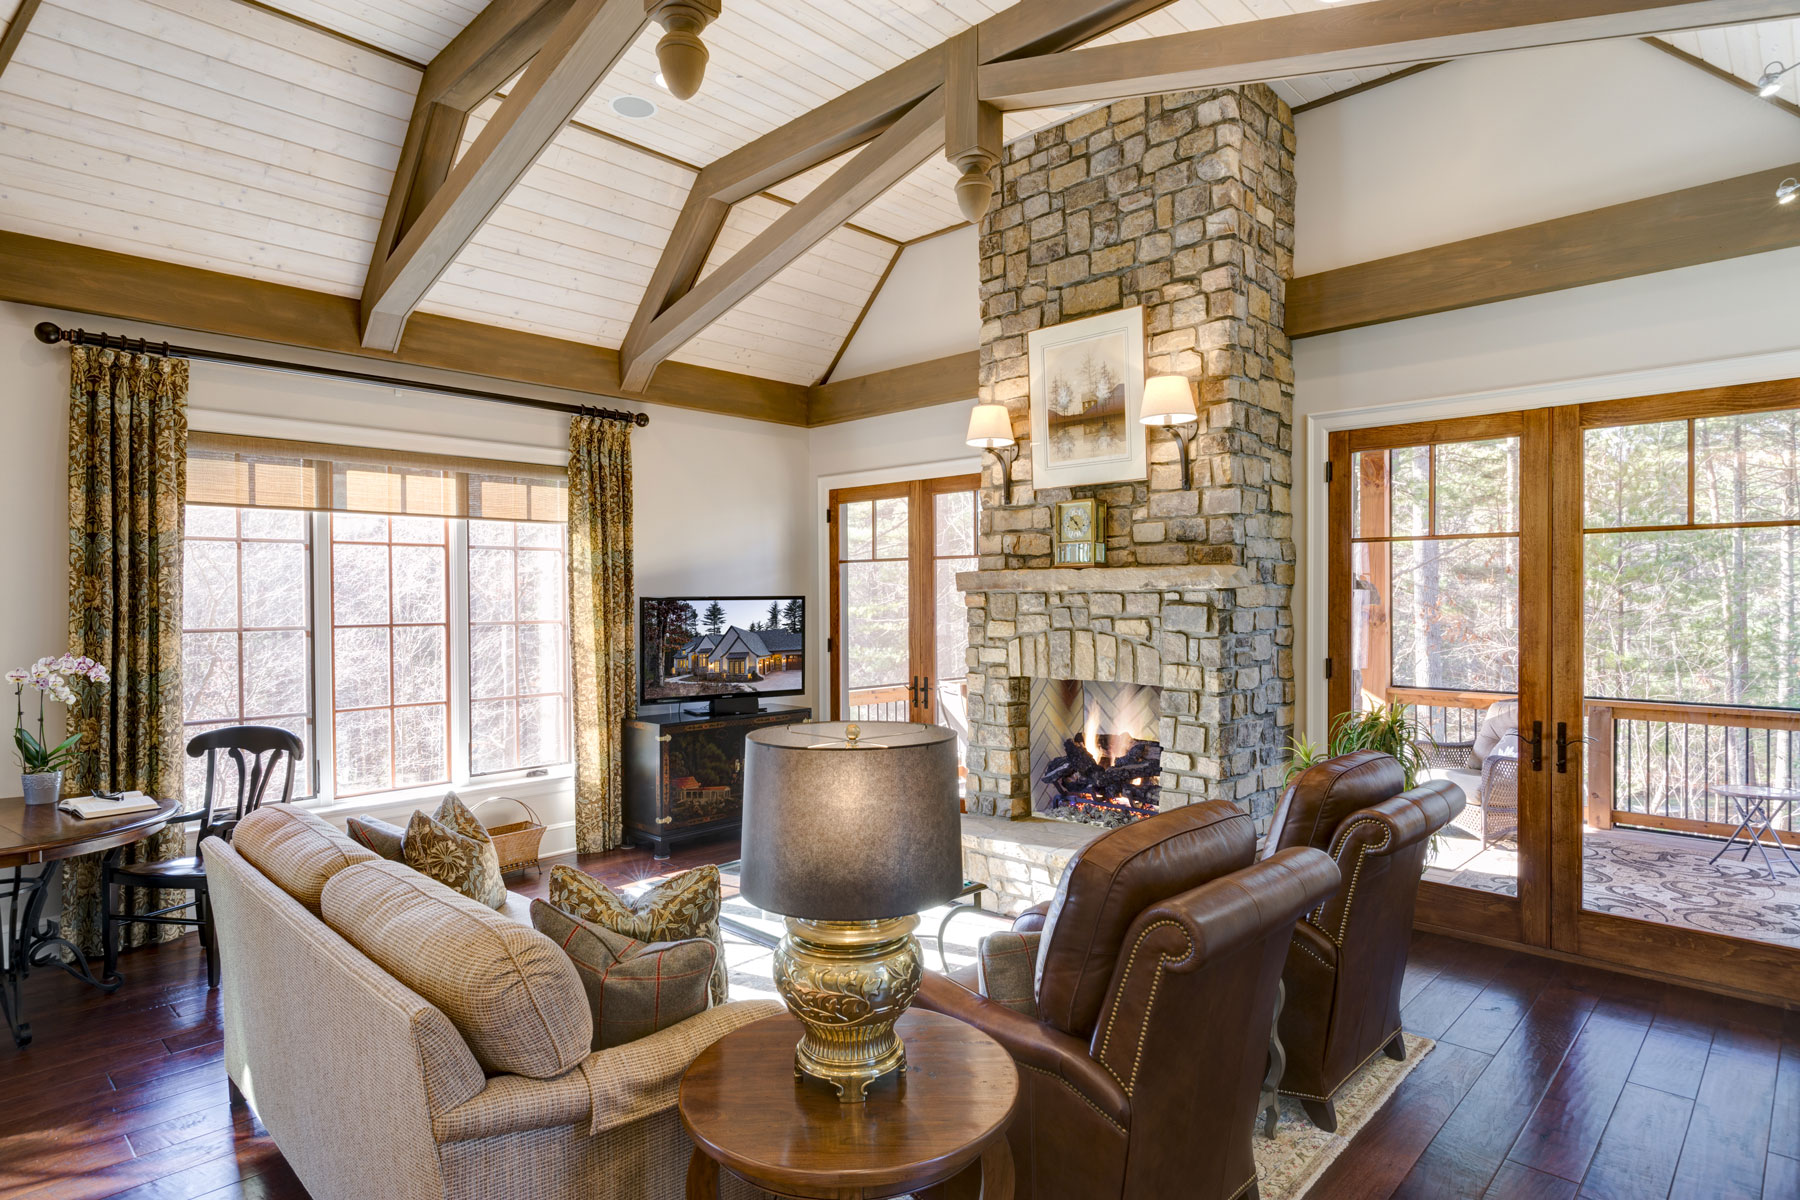 vault-ceiling-family-room-fireplace